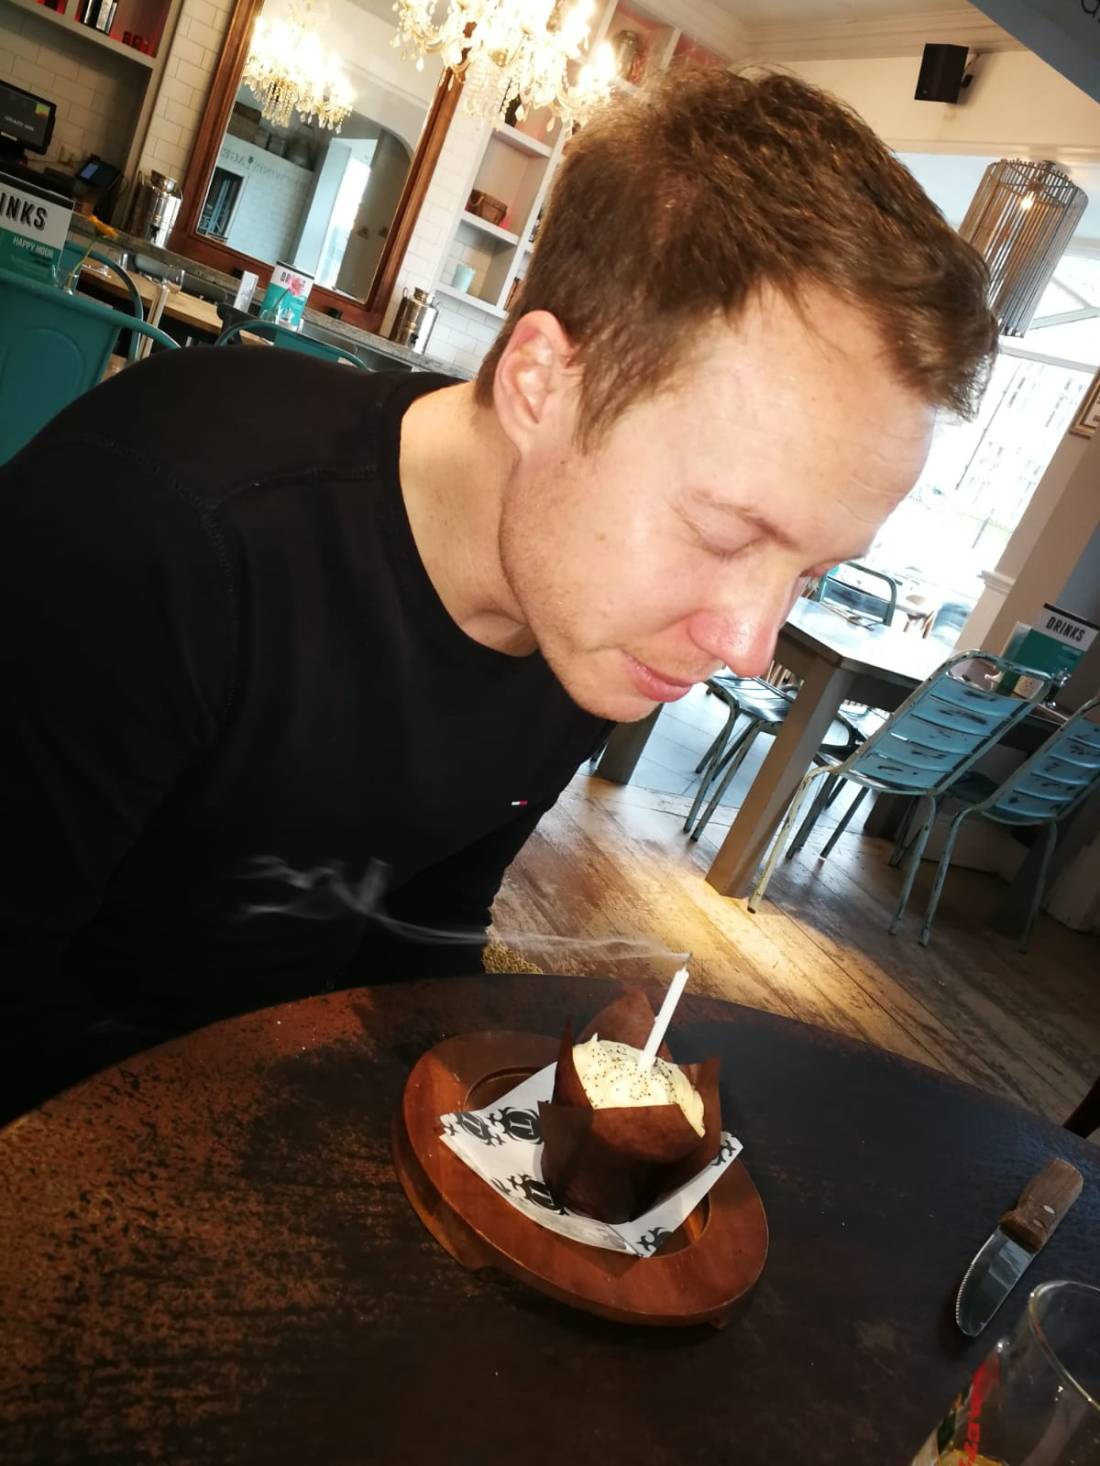 me blowing birthday candle out